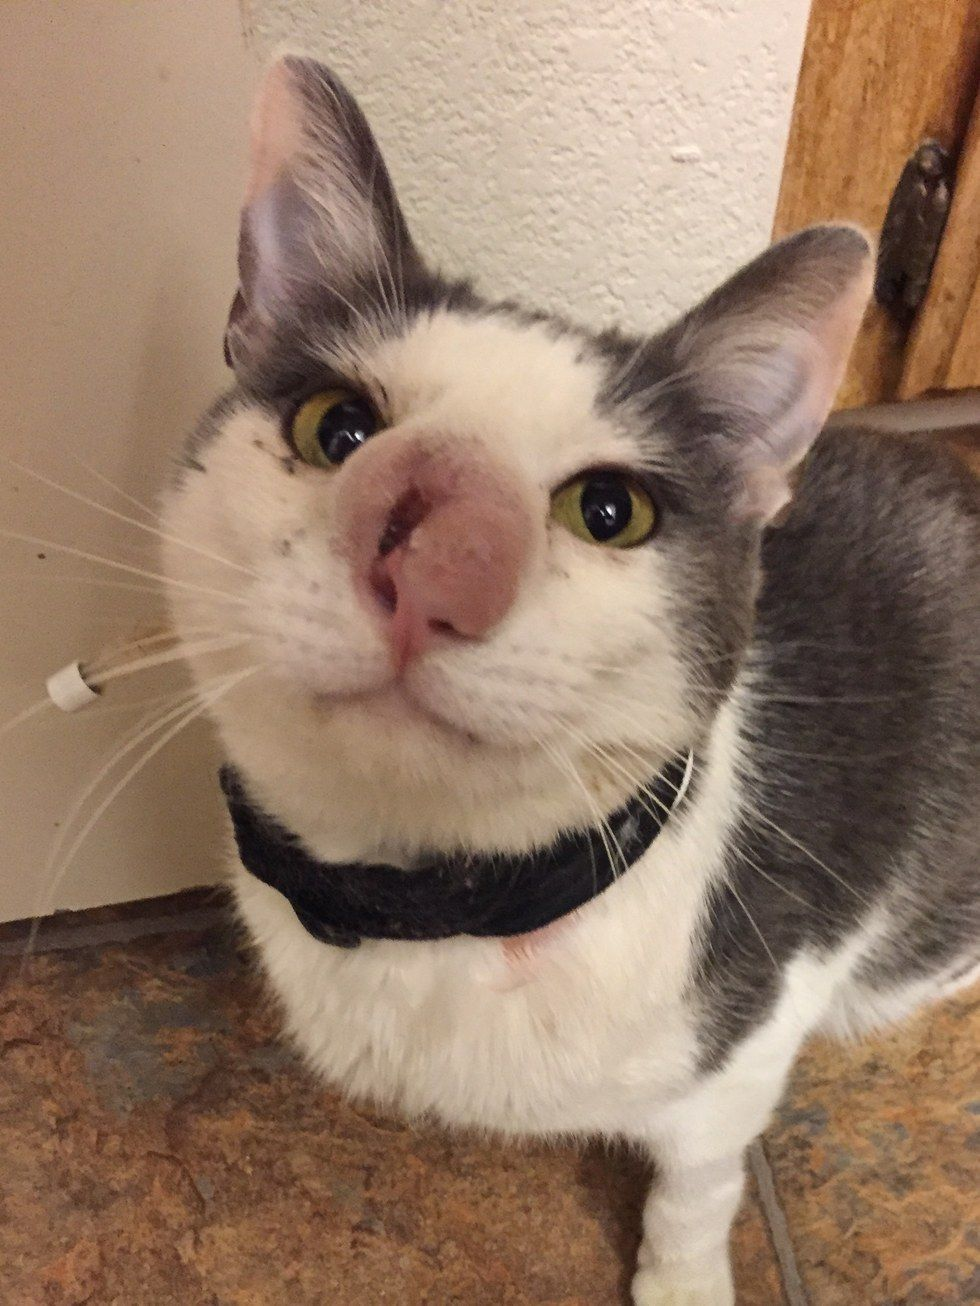 Cat With Terrible Infection Begged For Help But No One